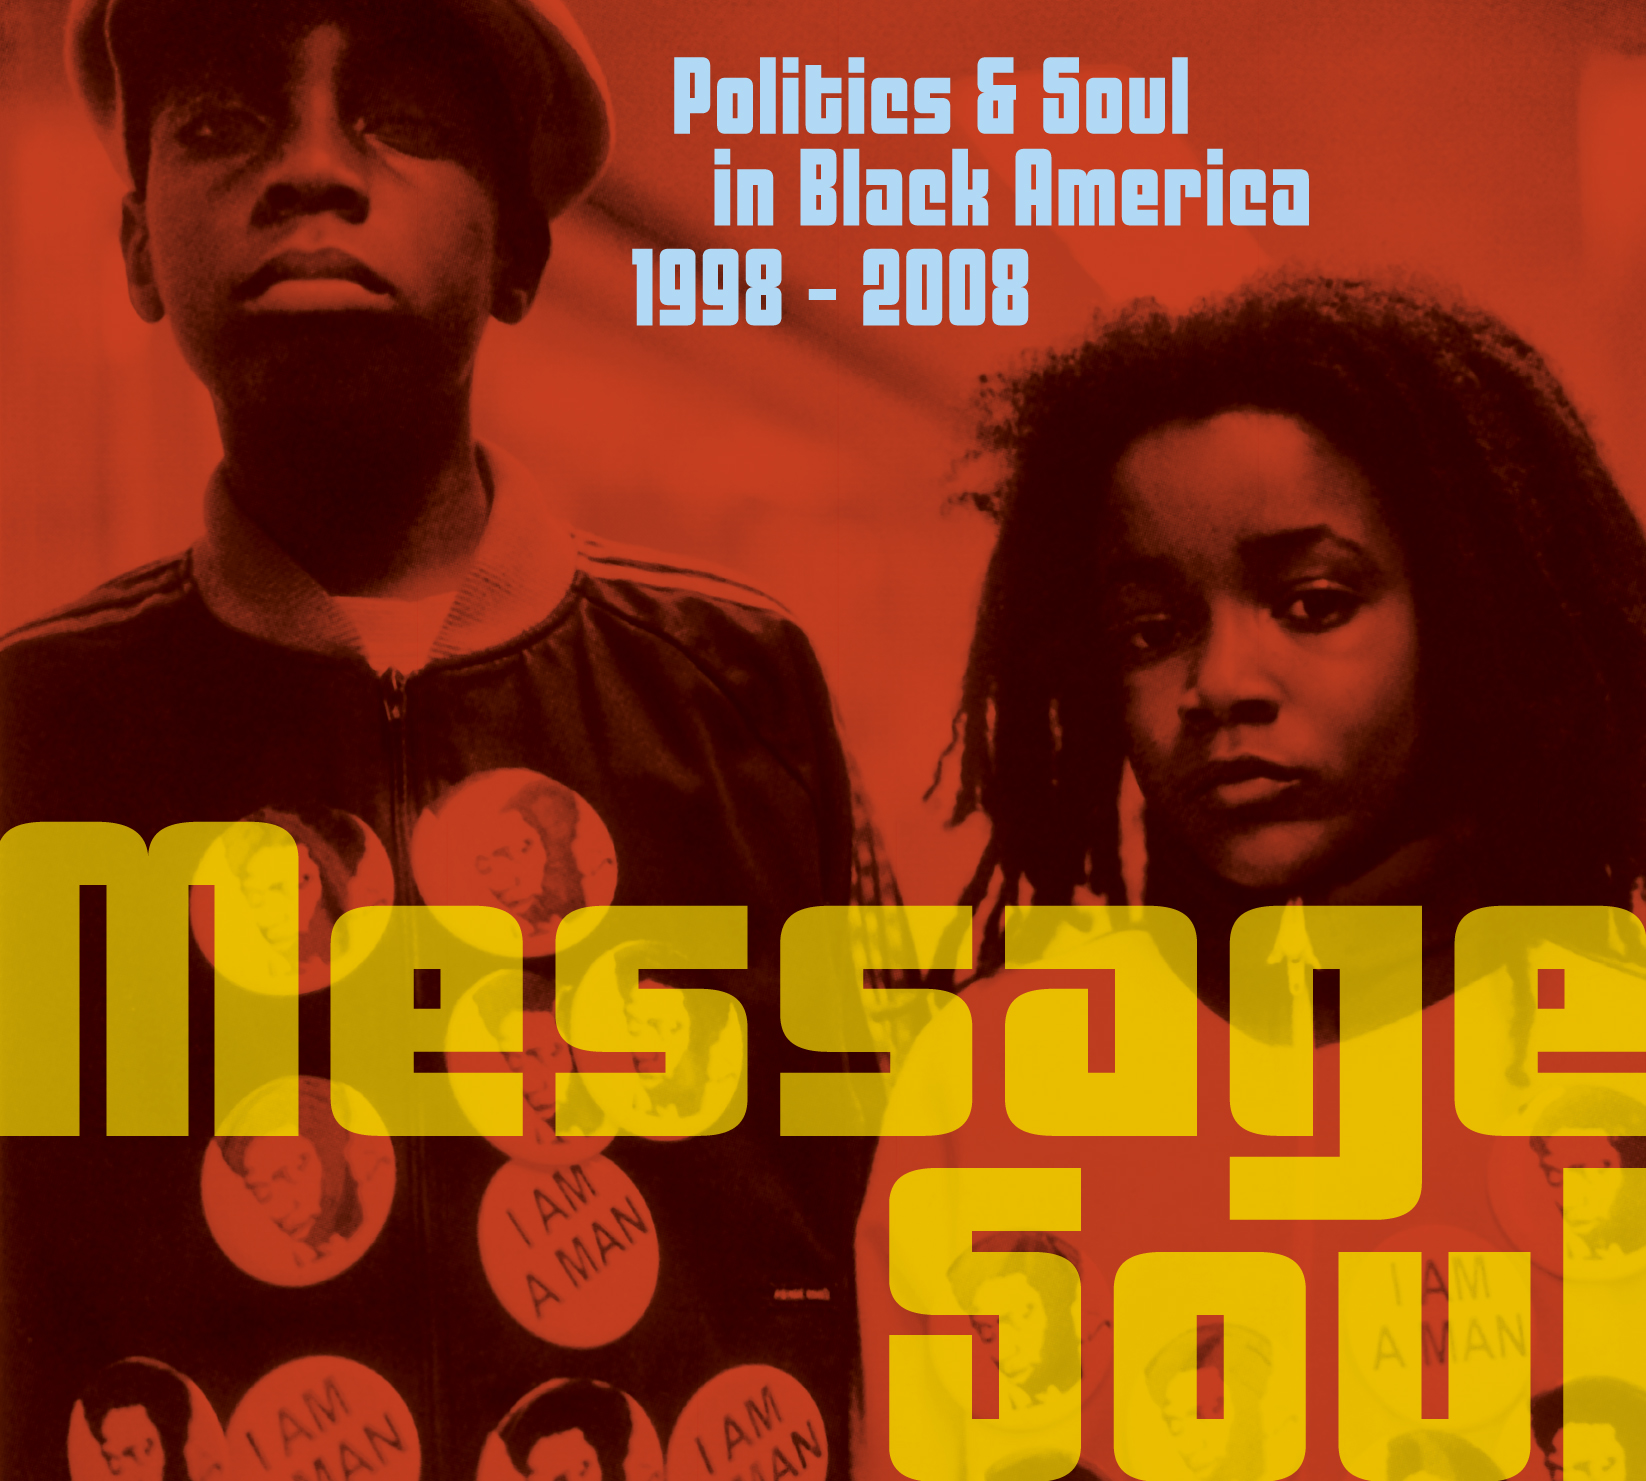 Message Soul - Politics & Soul in Black America 1998 - 2008